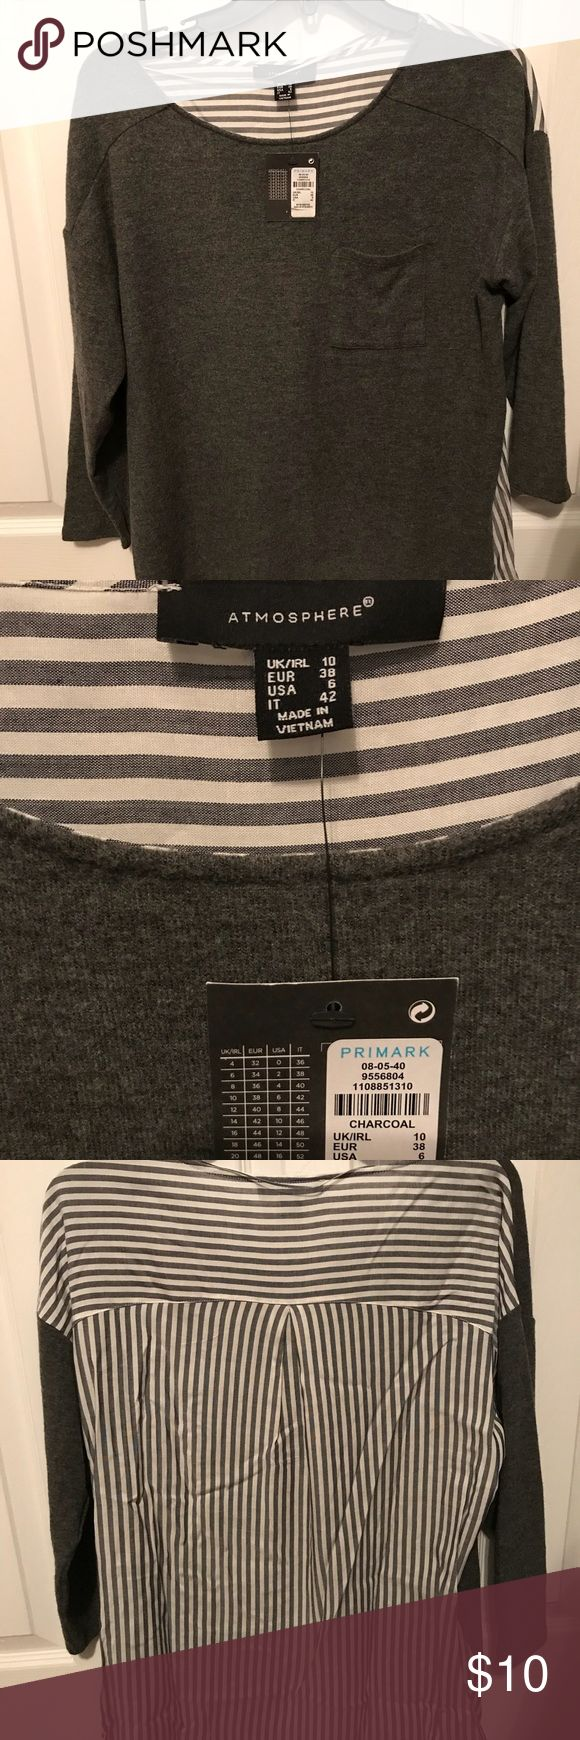 NWT Primark Top Cute top from Primark, NWT. Charcoal color. More of a soft, sweater material on front and blouse material on back. Back is striped. Primark Tops